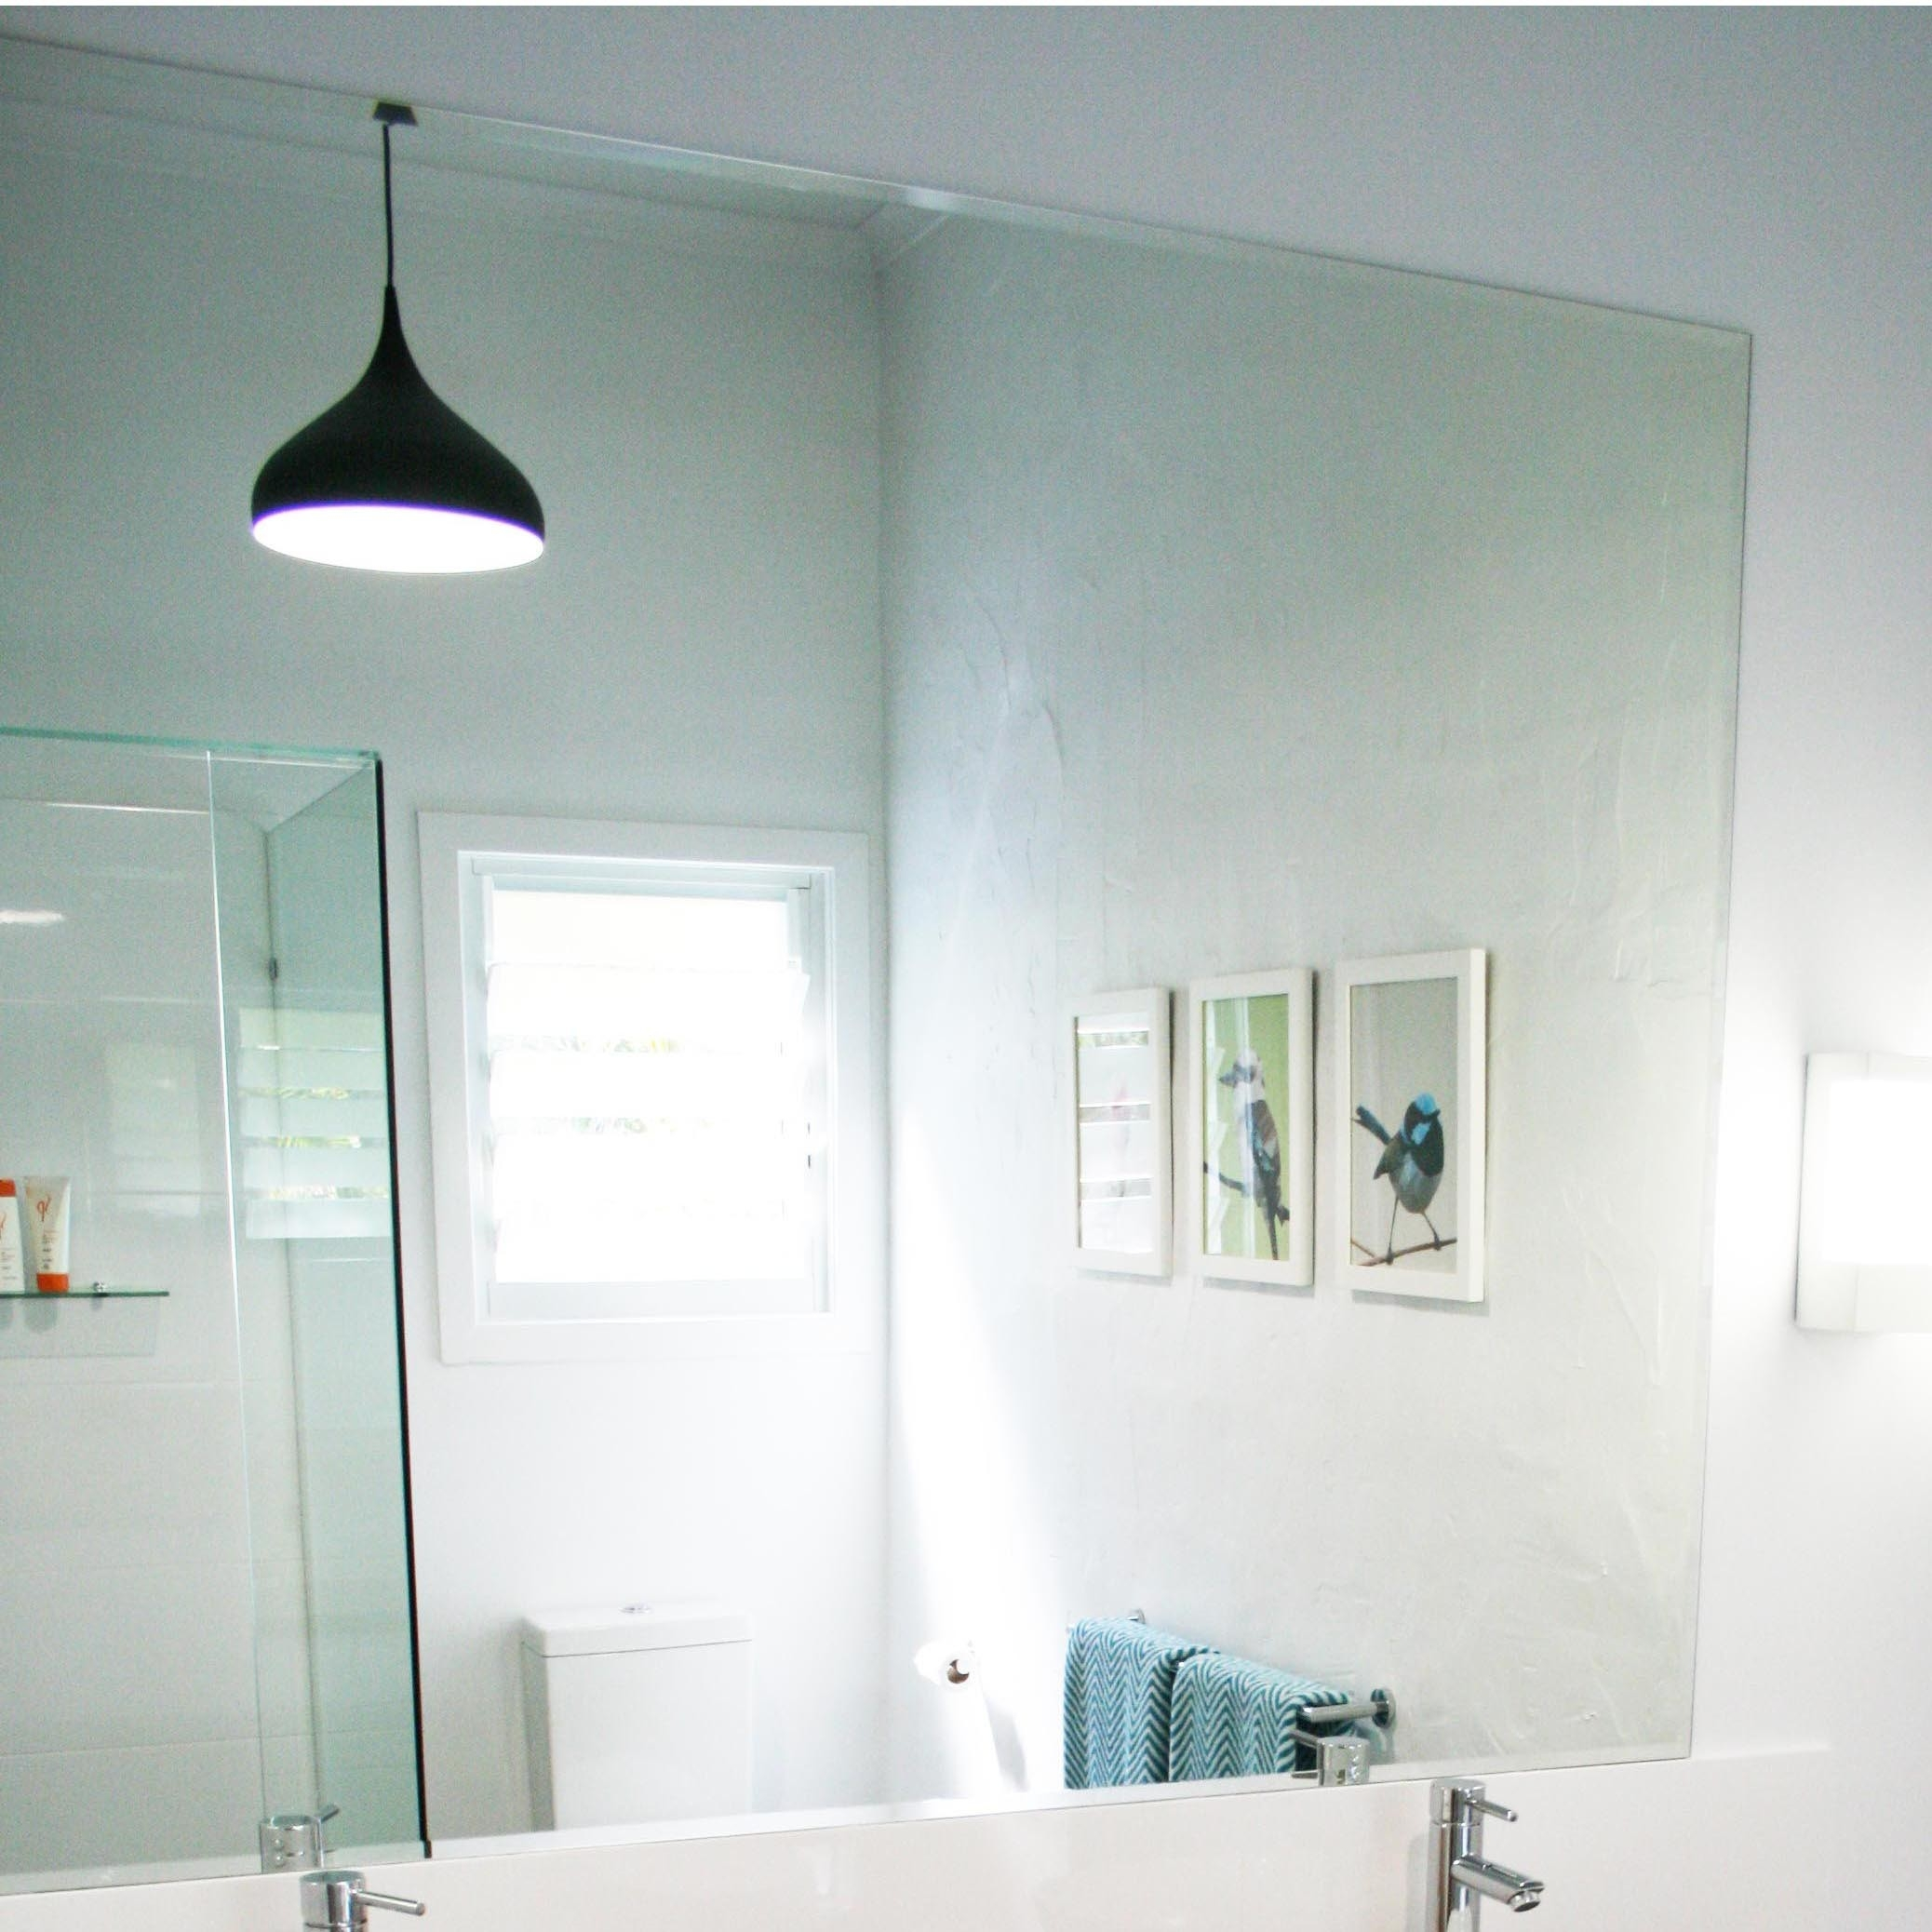 Reflekta Bevelled Edge Mirror 1500x1200mm Highgrove Bathrooms Pertaining To Highgrove Mirrors (View 4 of 15)